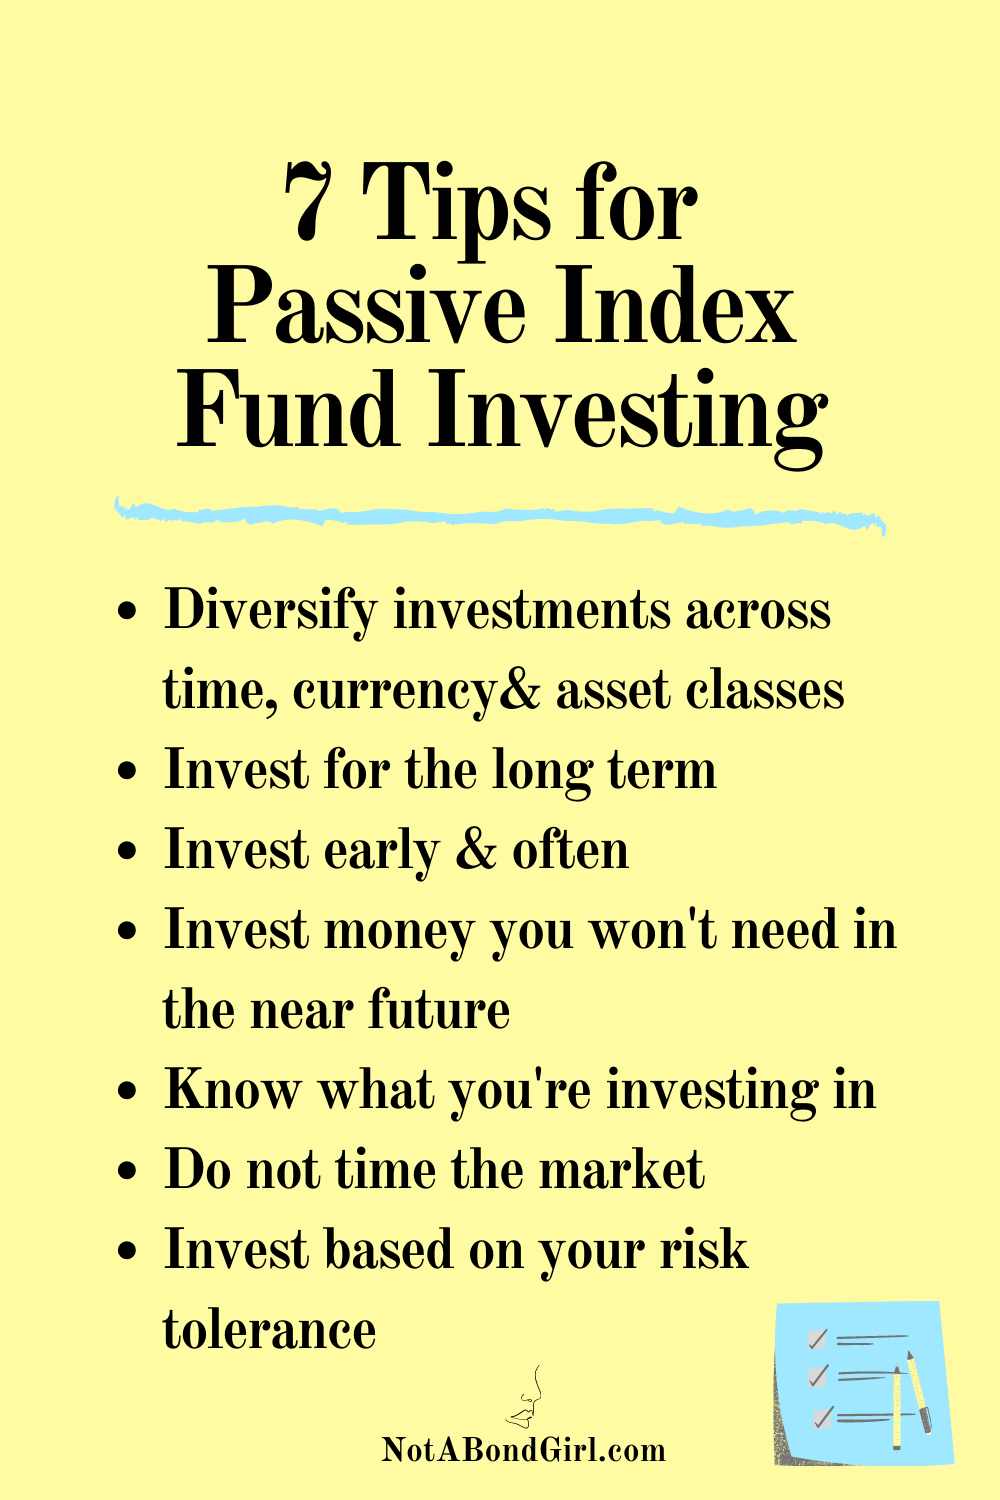 What's the Best Index Fund for Passive Income?